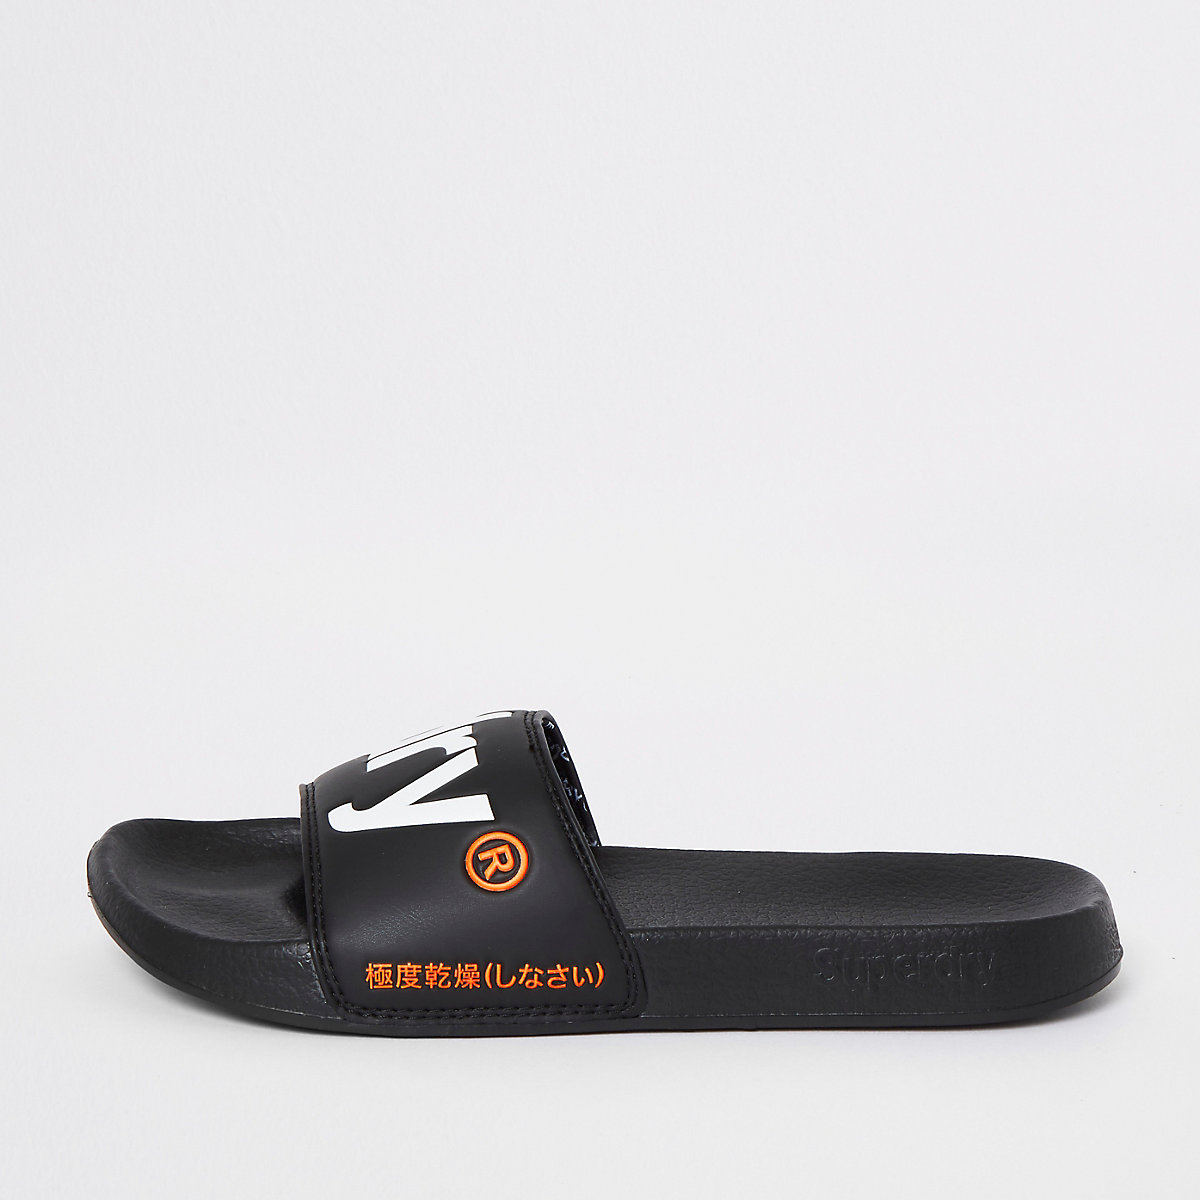 Superdry black sliders